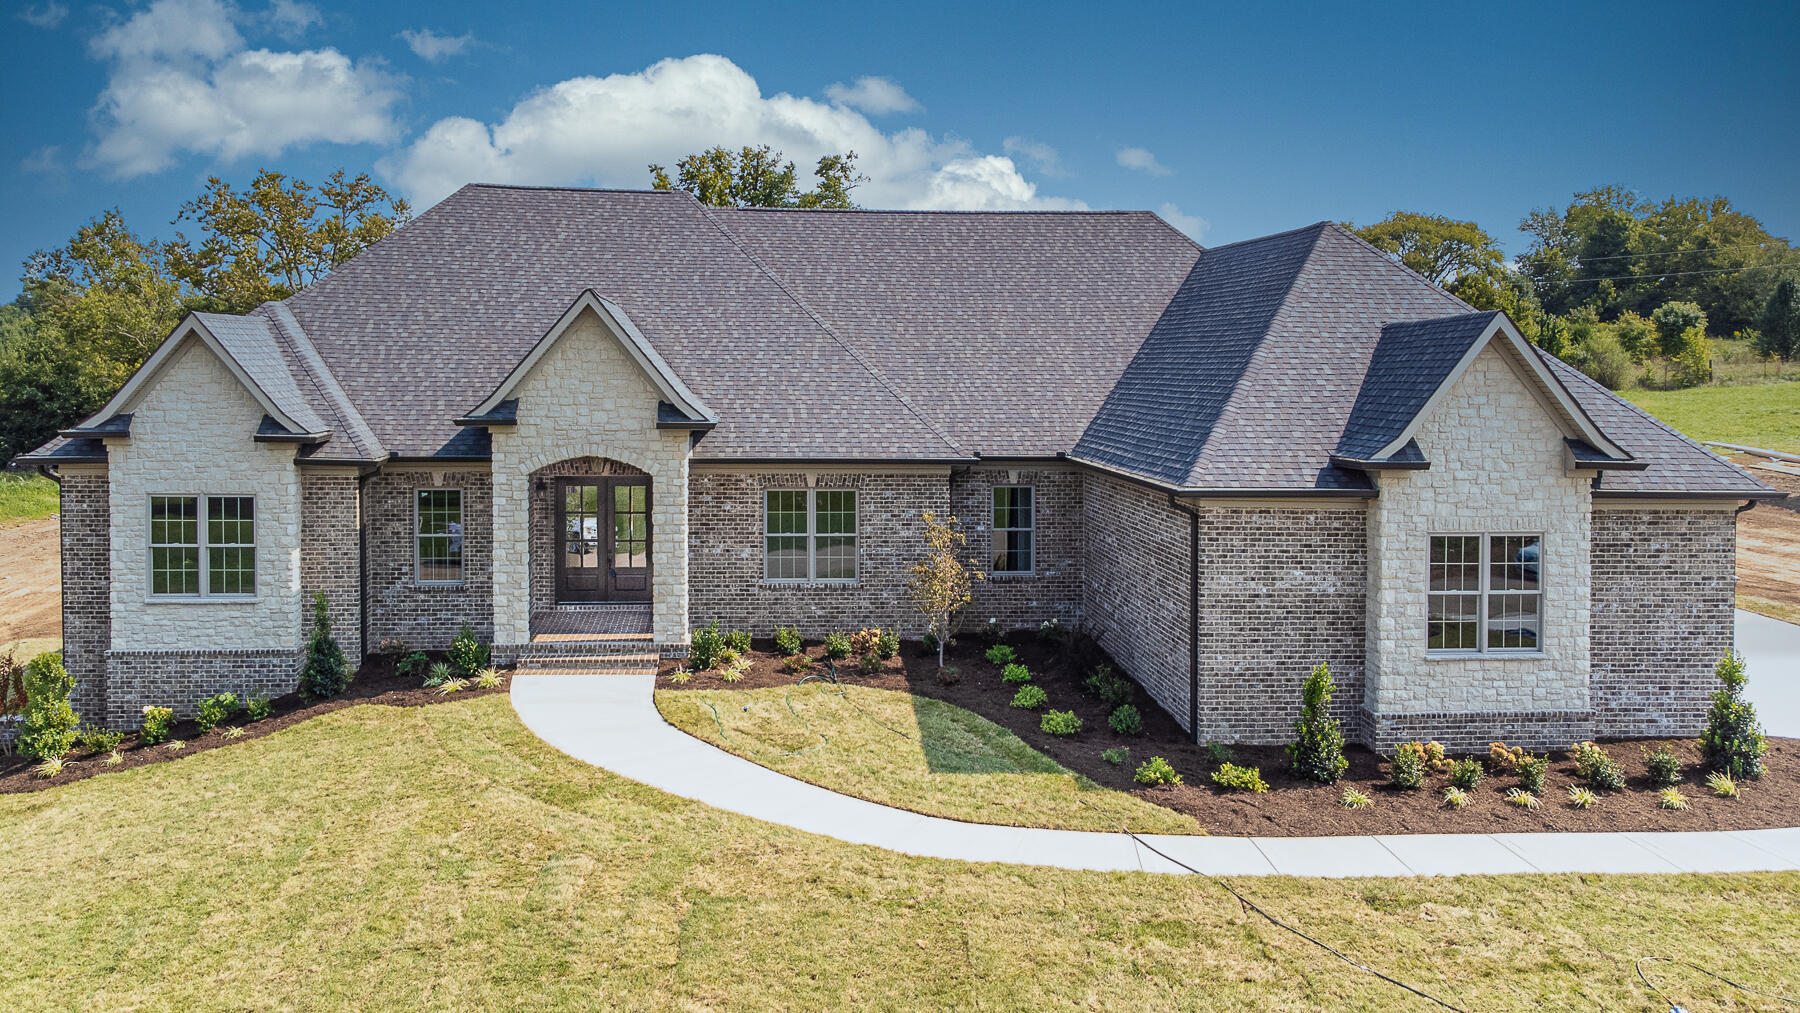 1004 Gallant Drive, Wilmore, KY 40390